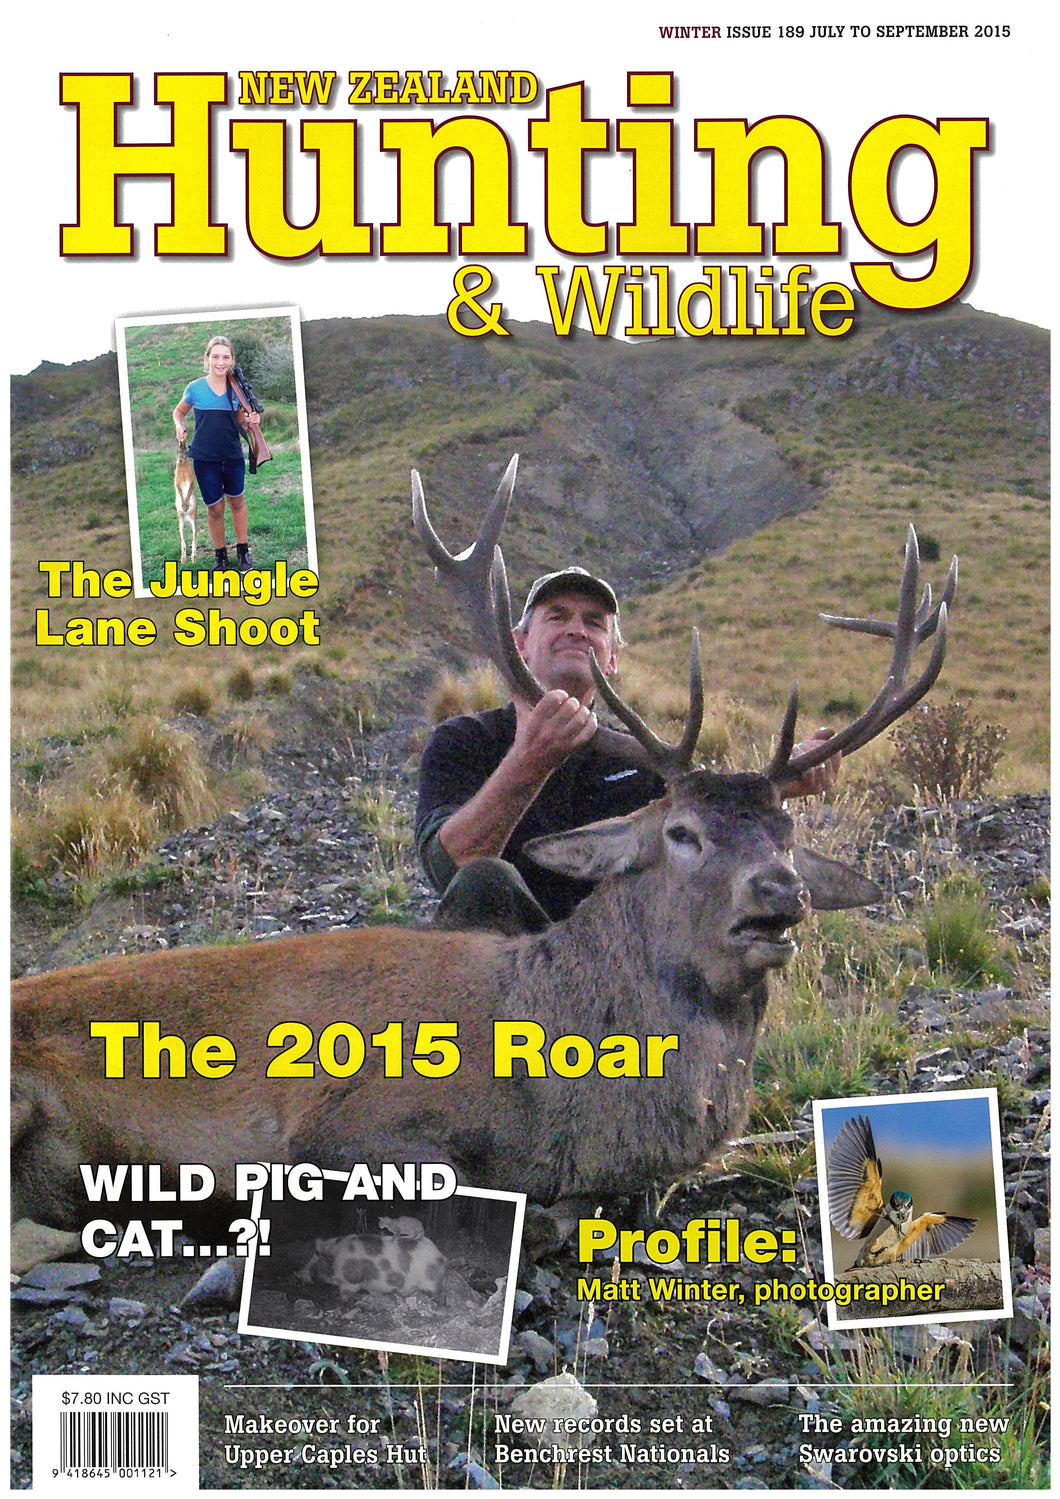 Issue 189 - Winter 2015